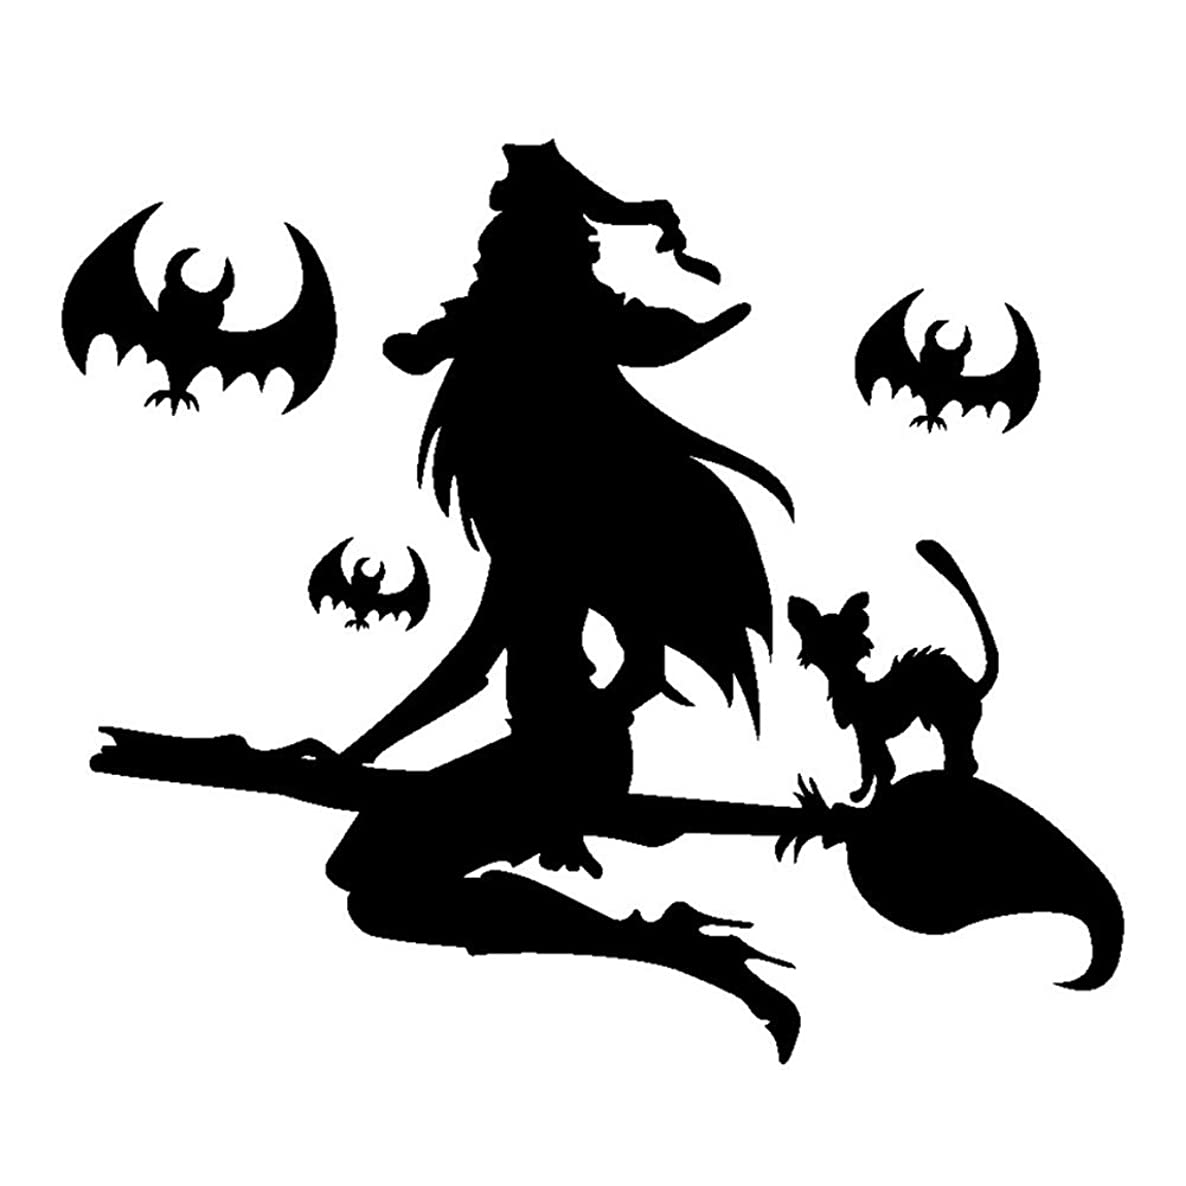 Domccy 6040cm Halloween Witch Labels Wall Sticker, Stickers Halloween Witch Wall Stickers in The Bedroom or Decoration of Halloween Witch Black DIY and Tools, Painting Supplies Wall Treatment